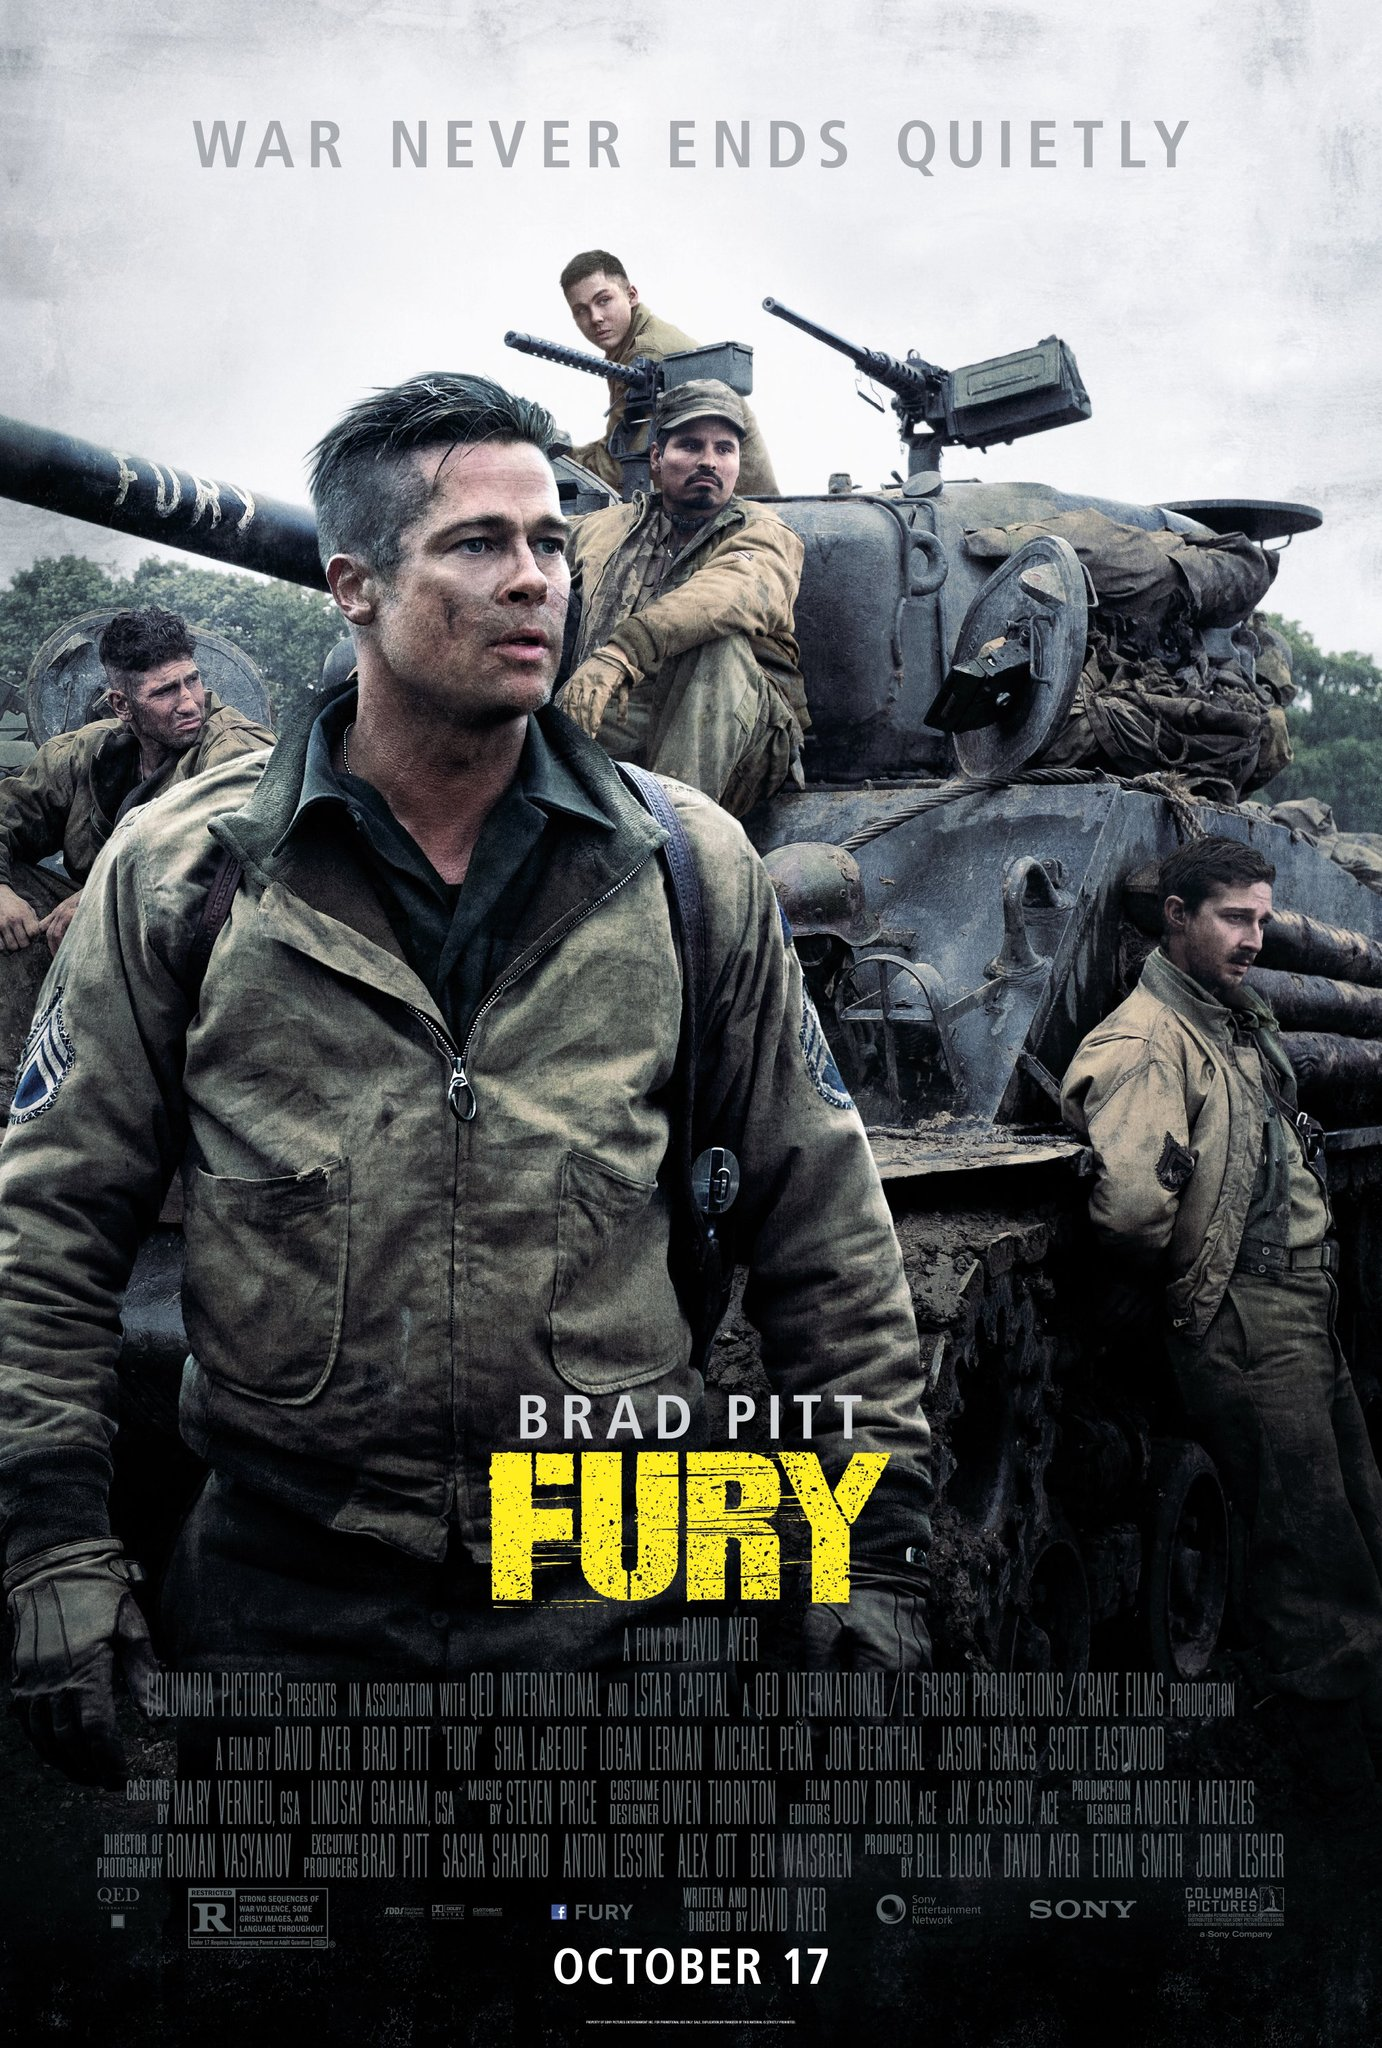 Fury (2014) 720p + 1080p BluRay x264 ESubs Dual Audio [Hindi DD2.0 + English DTS 5.1] 1.1GB + 4.84GB Download | Watch Online